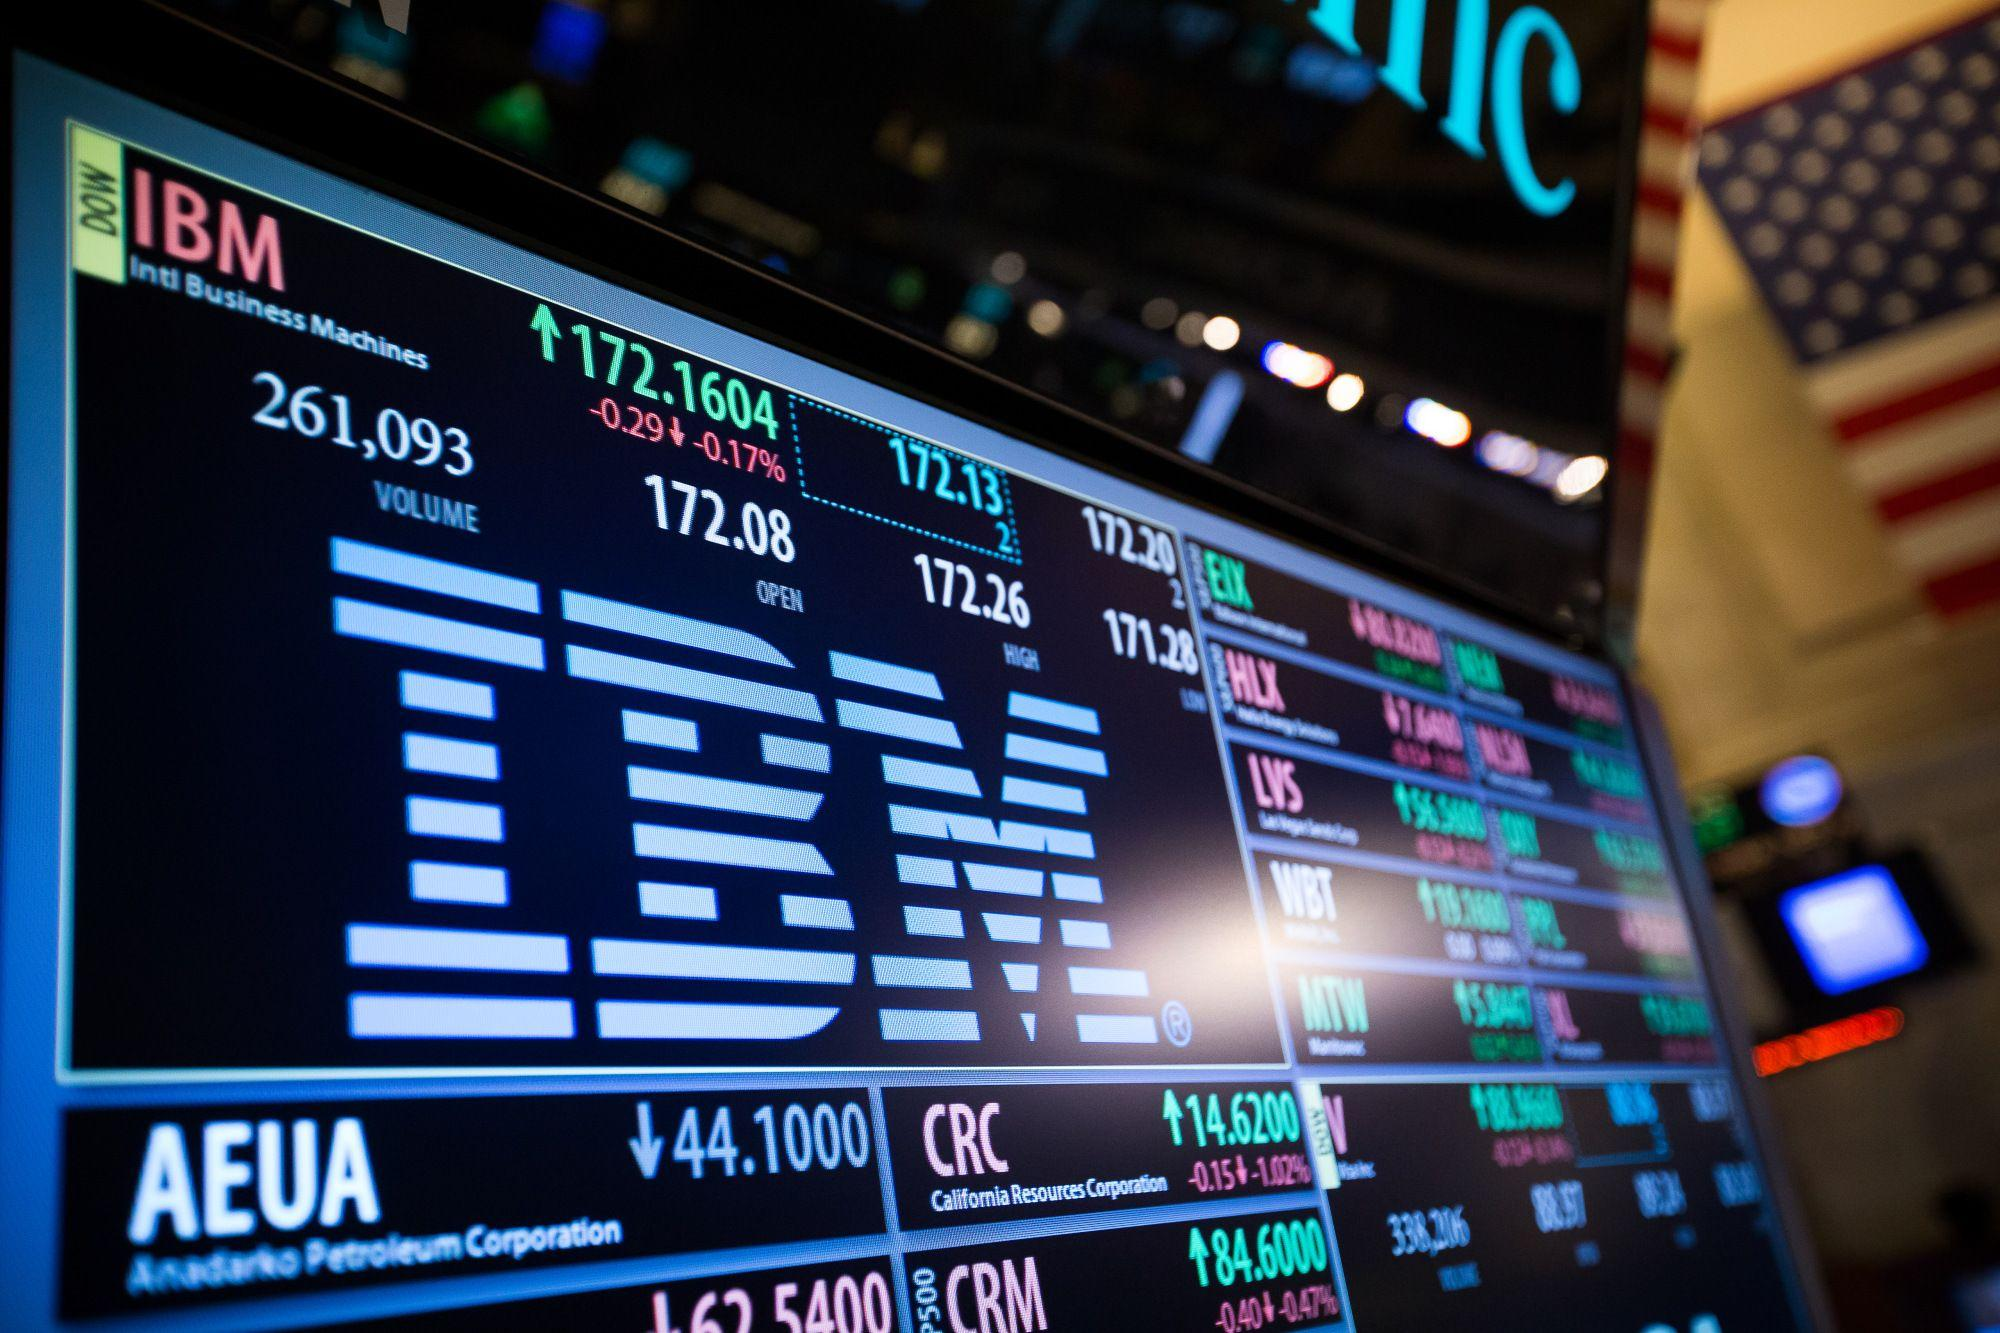 IBM Revenue Beats Estimates, Buoyed by Growth in Cloud Sales -